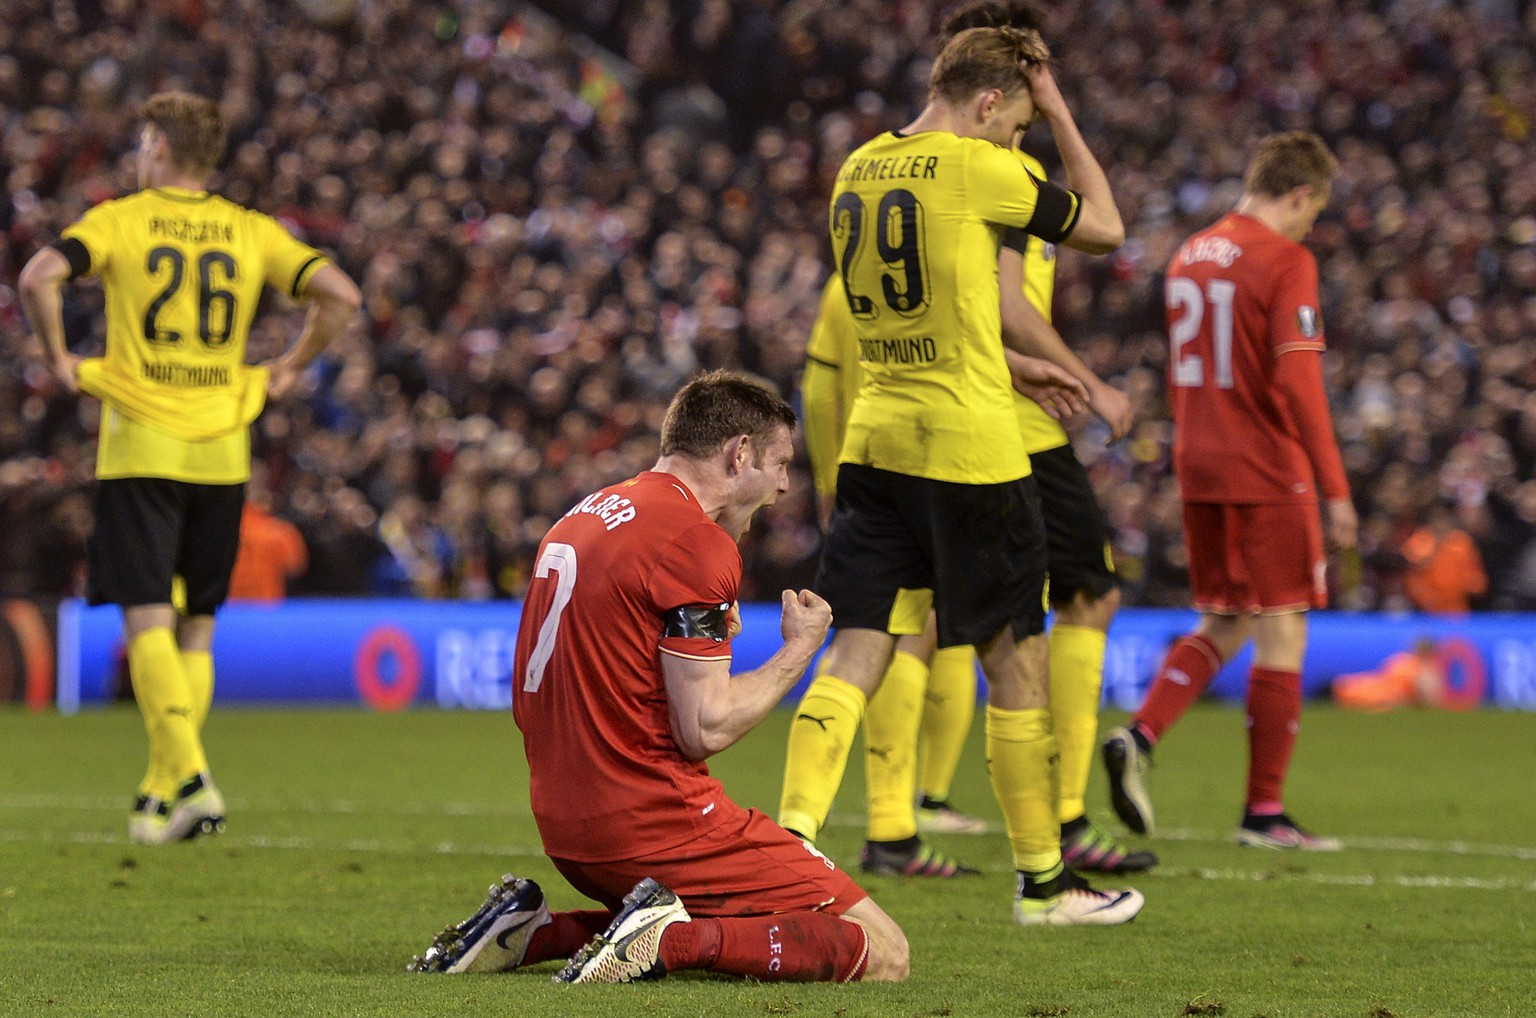 epa05259324 Liverpool's James Milner (C) celebrates  victory against Borussia Dortmund after the UEFA Europa League quarter final second leg soccer match between Liverpool FC vs Borussia Dortmund, at Anfield in Liverpool, Britain, 14 April 2016.  EPA/PETER POWELL